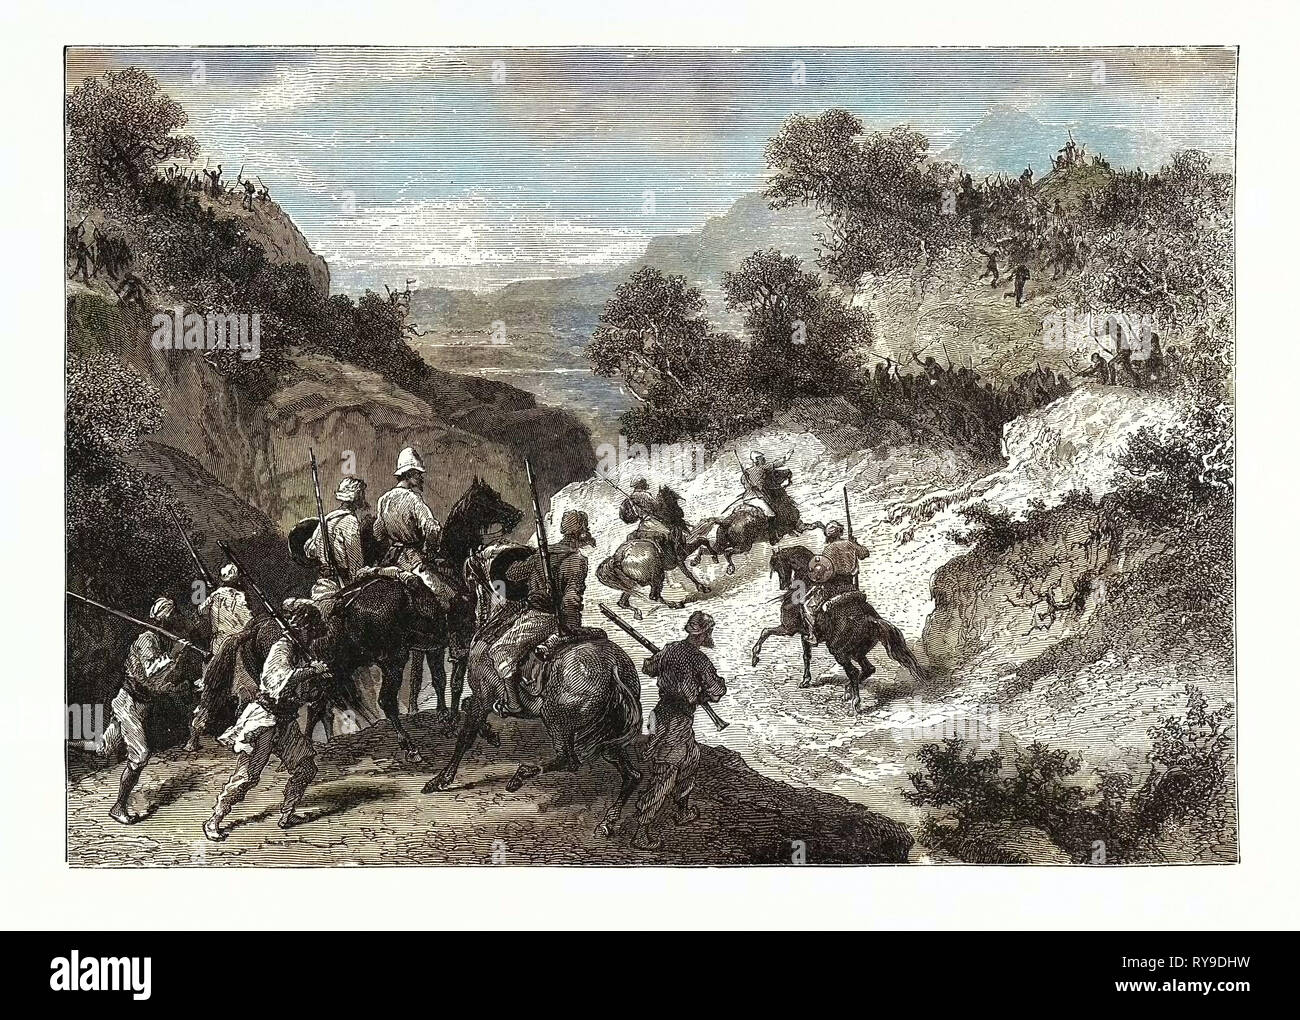 Parley with Bheels in the Beechwarra Pass. Parley is a Discussion or Conference, Especially One Between Enemies Over Terms of a Truce or Other Matters. Bheels, a Tribe from Central India - Stock Image